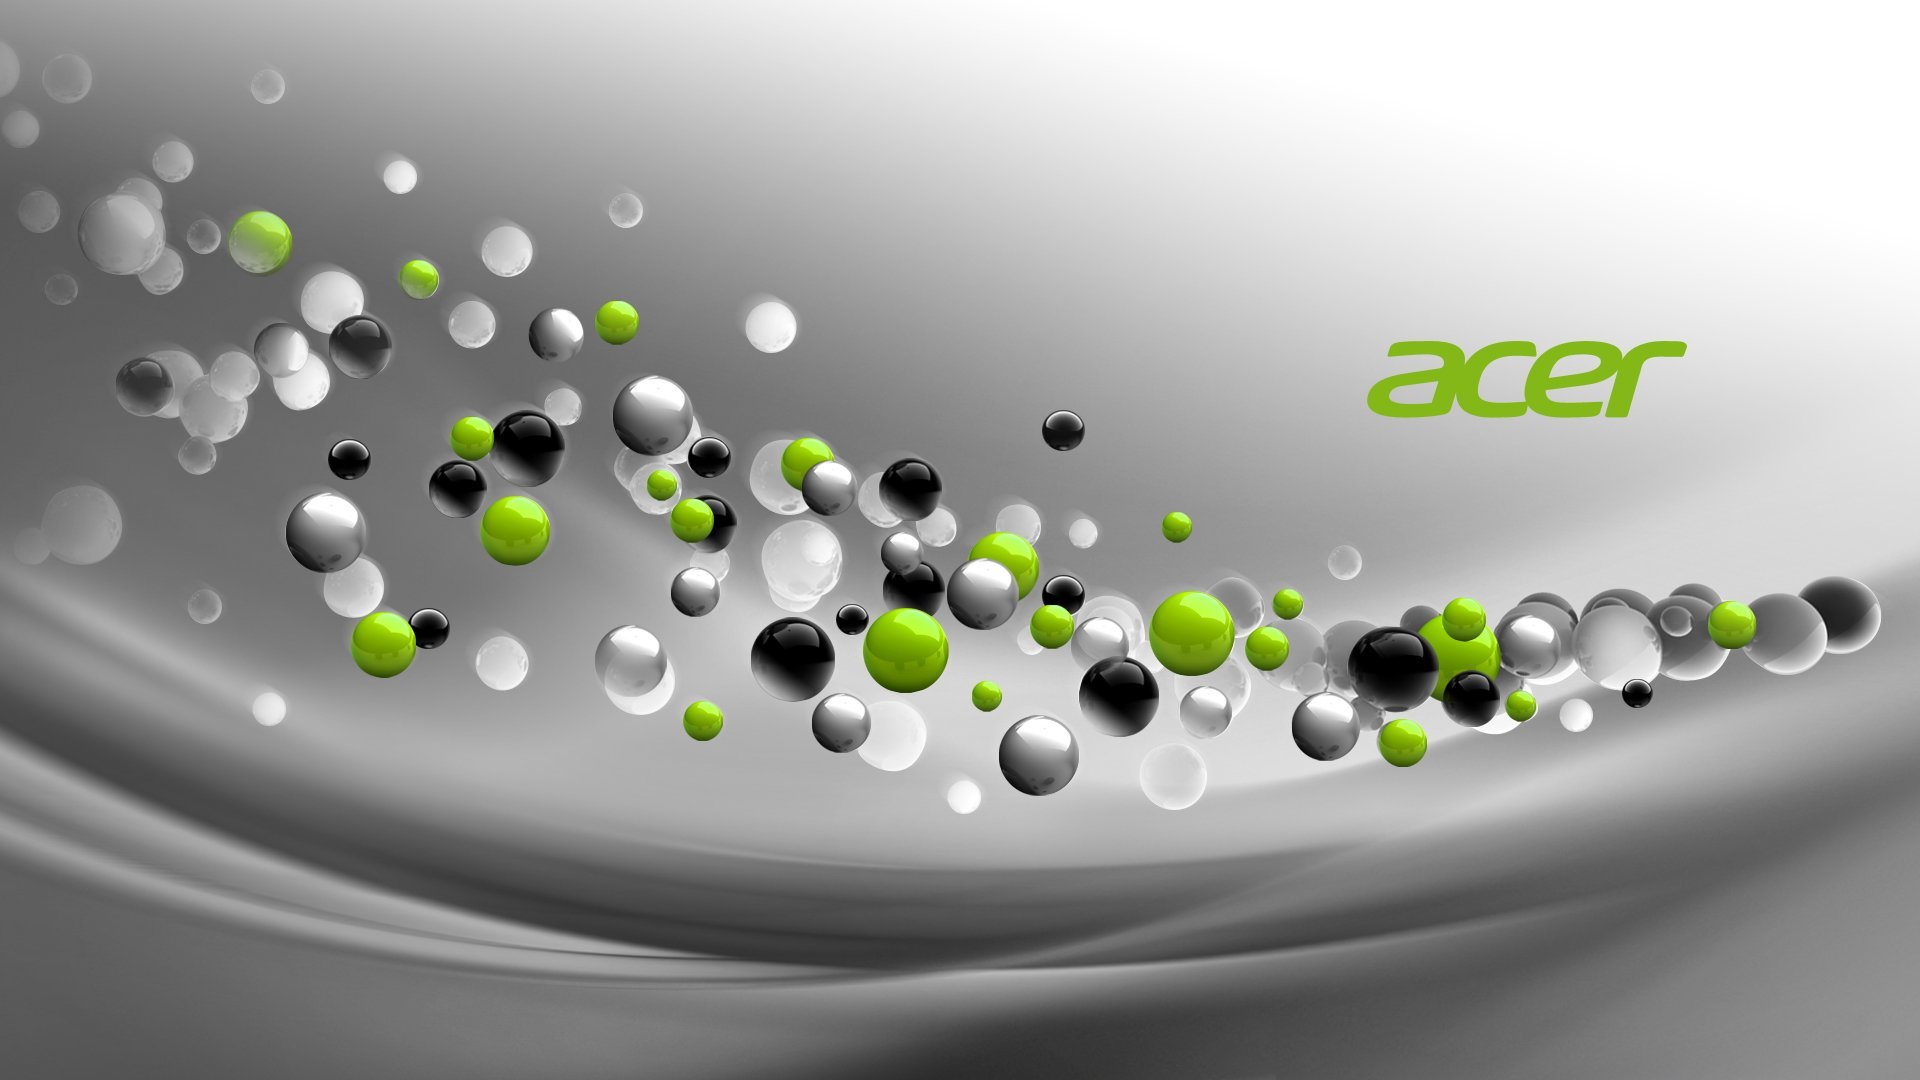 Free Download Acer Wallpaper ID291027 Full Hd 1080p For PC